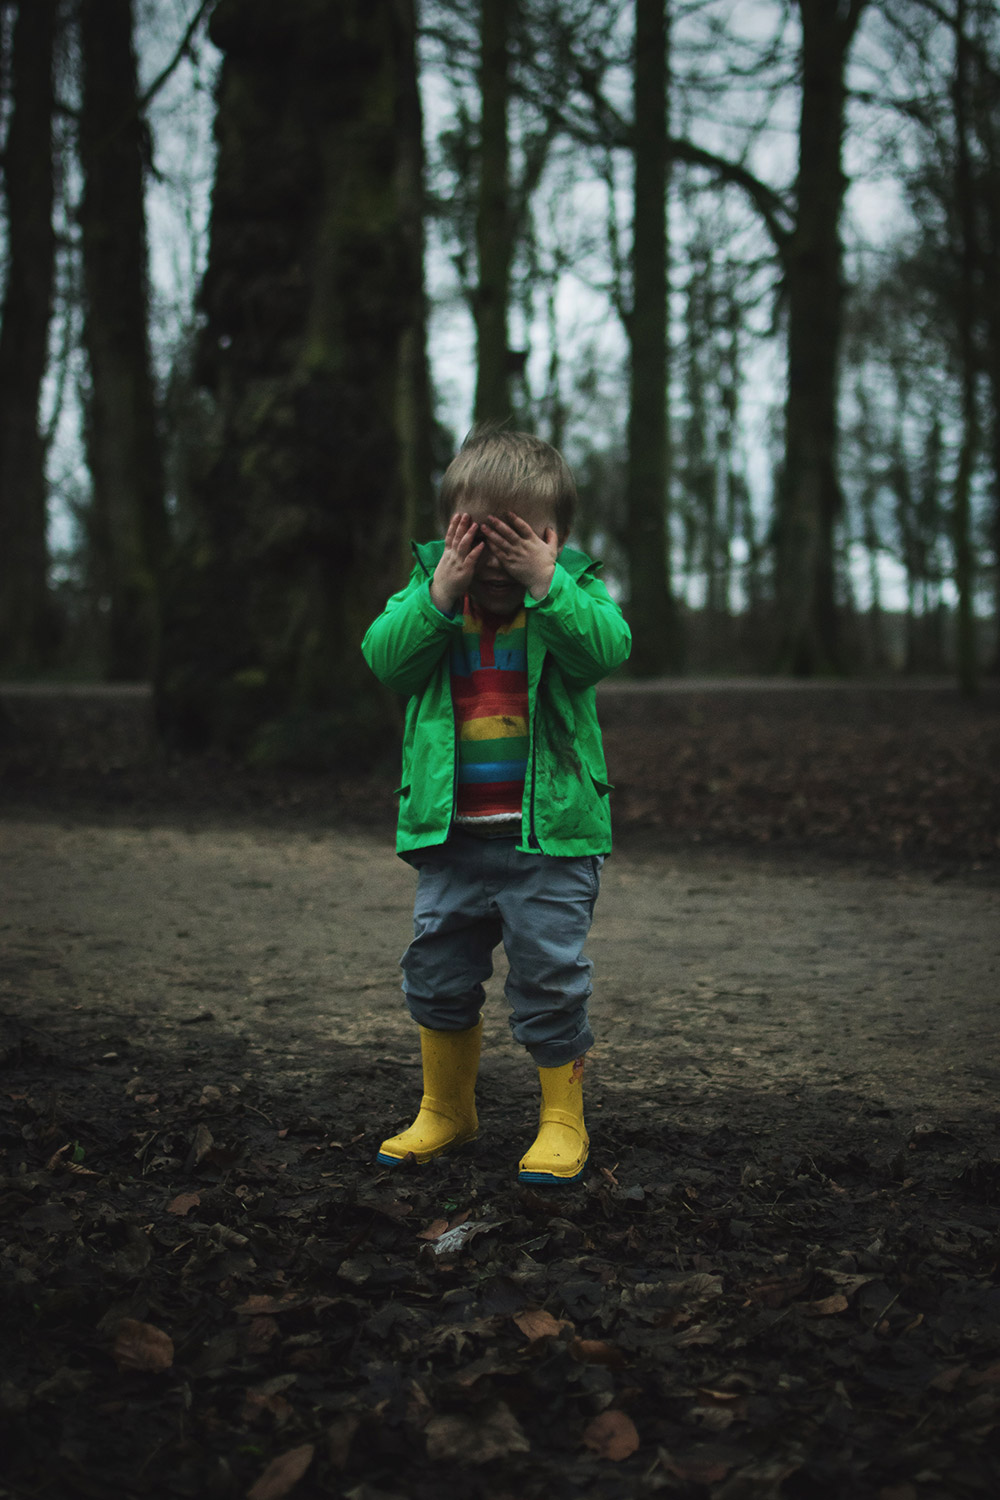 Snowdrops & Rainbows — The Ordinary Moments #17; Three year old boy wearing Frugi rainbow fleece and Next green raincoat and wellies playing in a muddy park looking for snowdrops for Spring